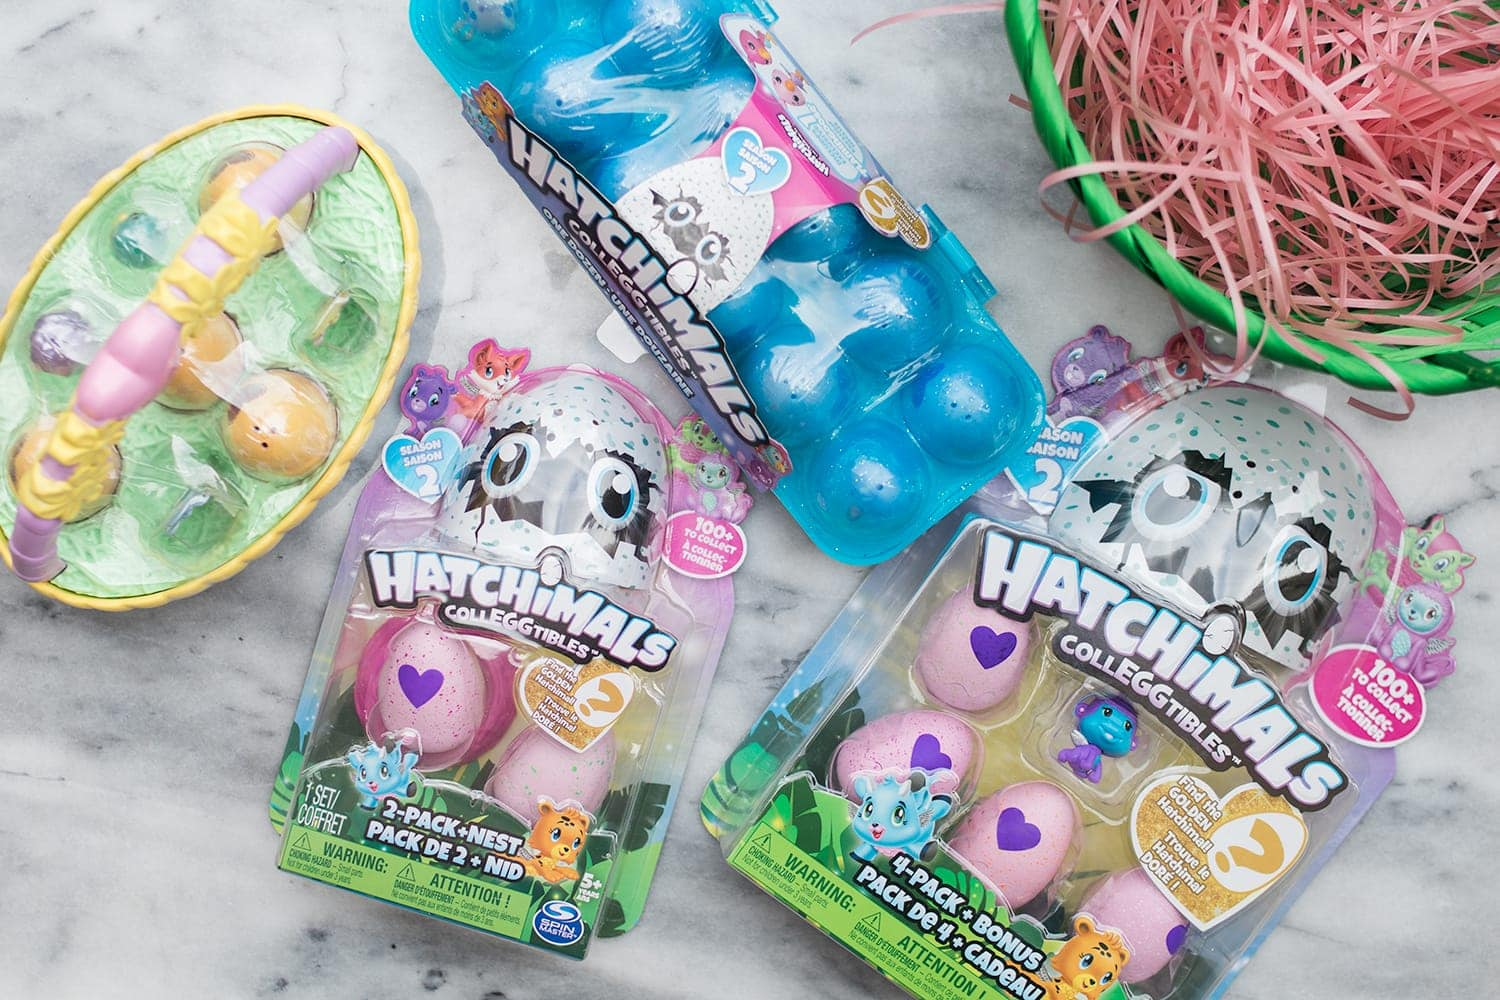 Hatchimals are perfect Easter gifts or to use in an Easter egg hunt!